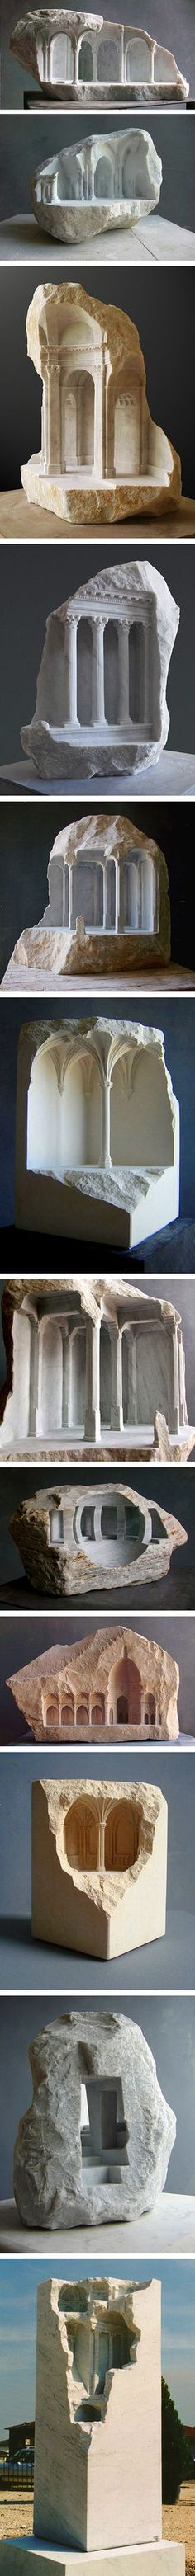 Marble Sculptures by Matthew Simmonds...Ancient Greece, Alexander